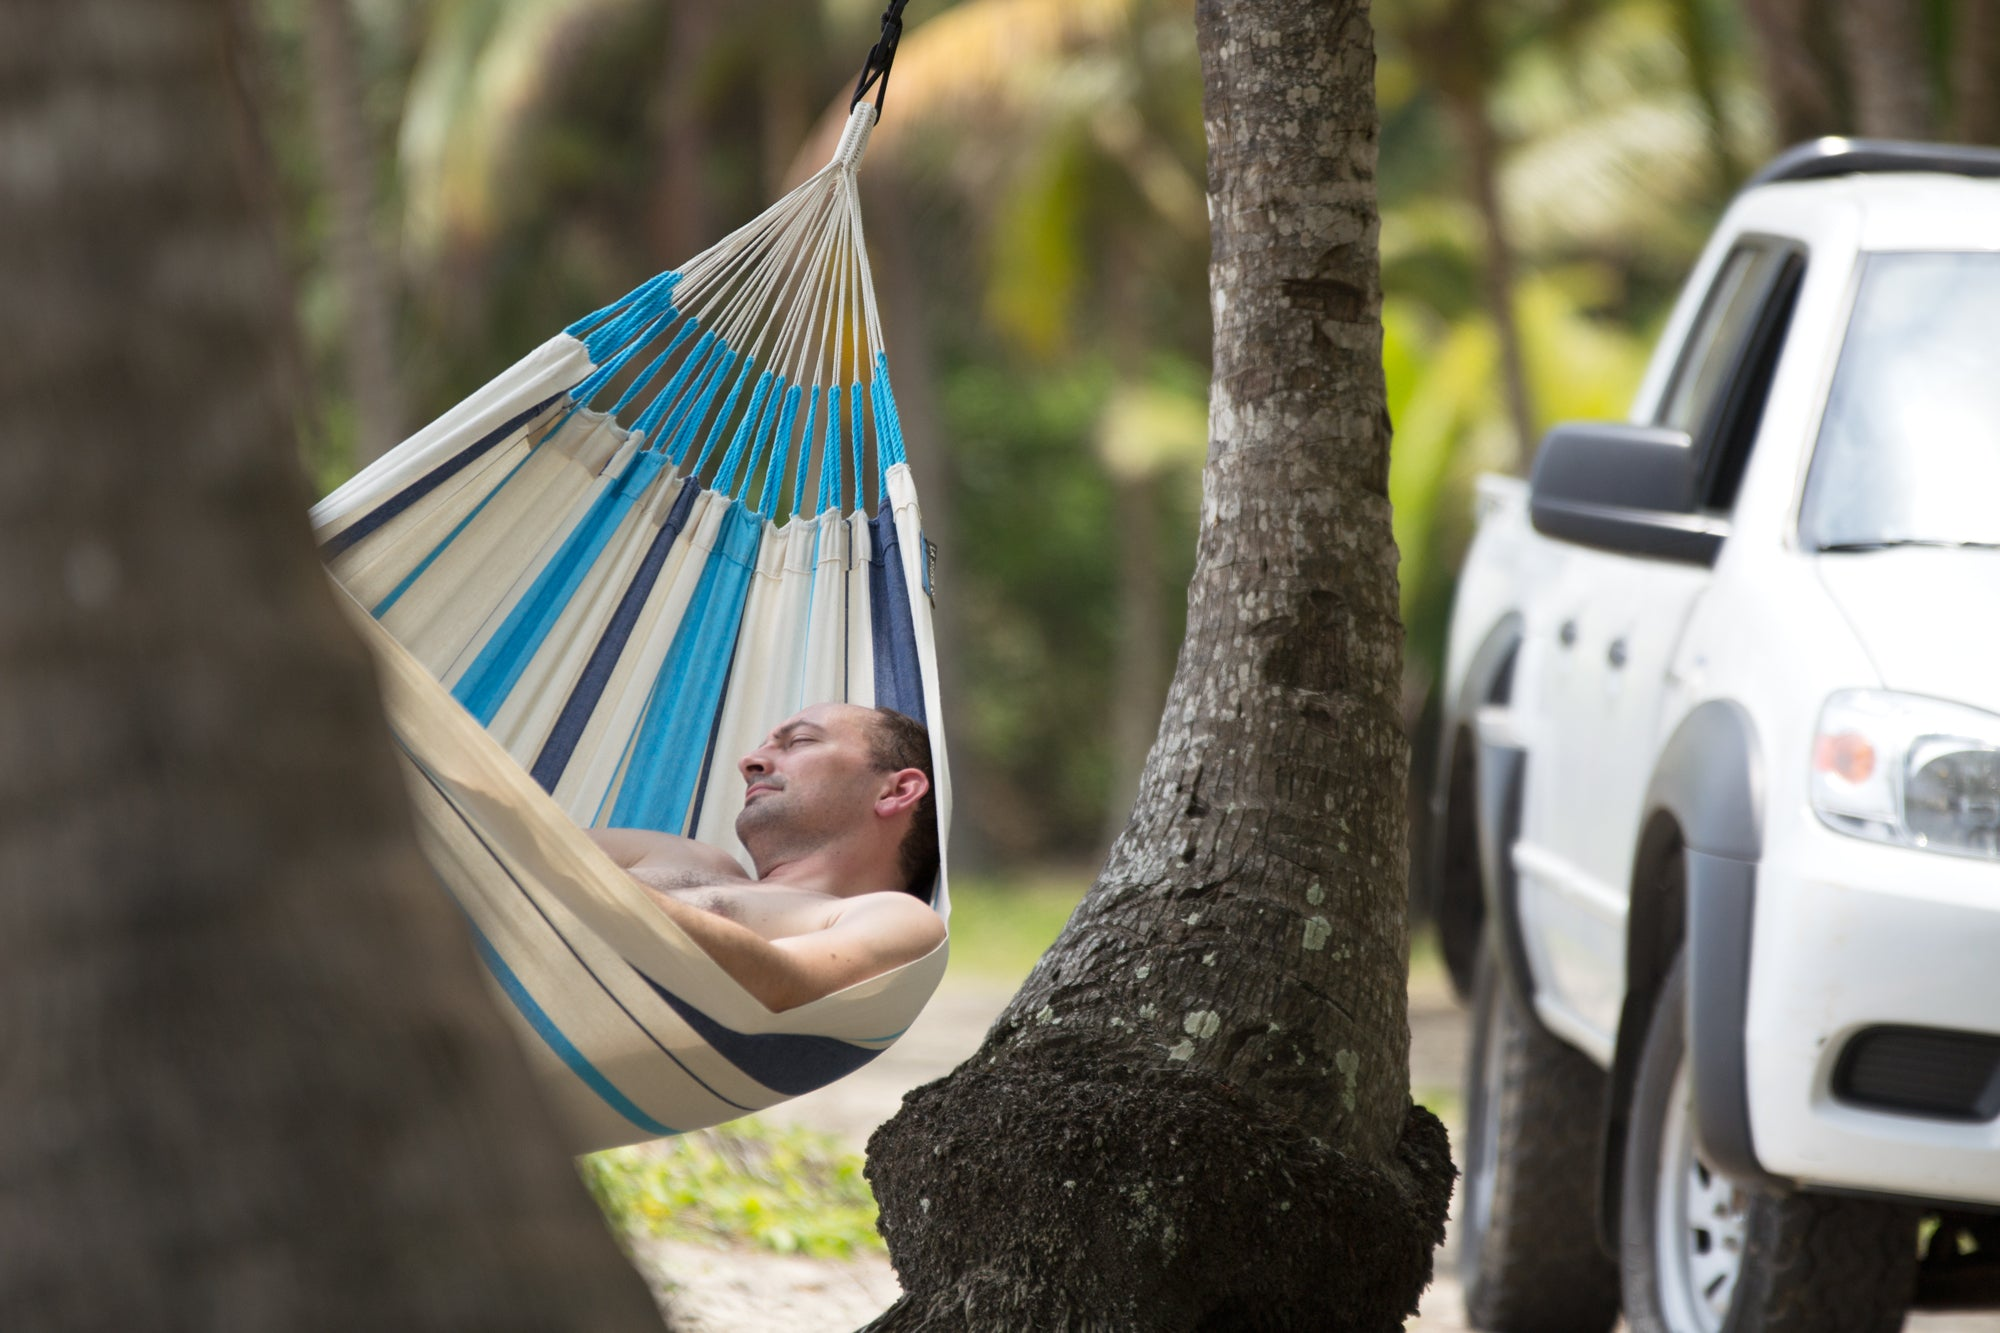 6 MAJOR HEALTH BENEFITS OF SLEEPING IN A HAMMOCK